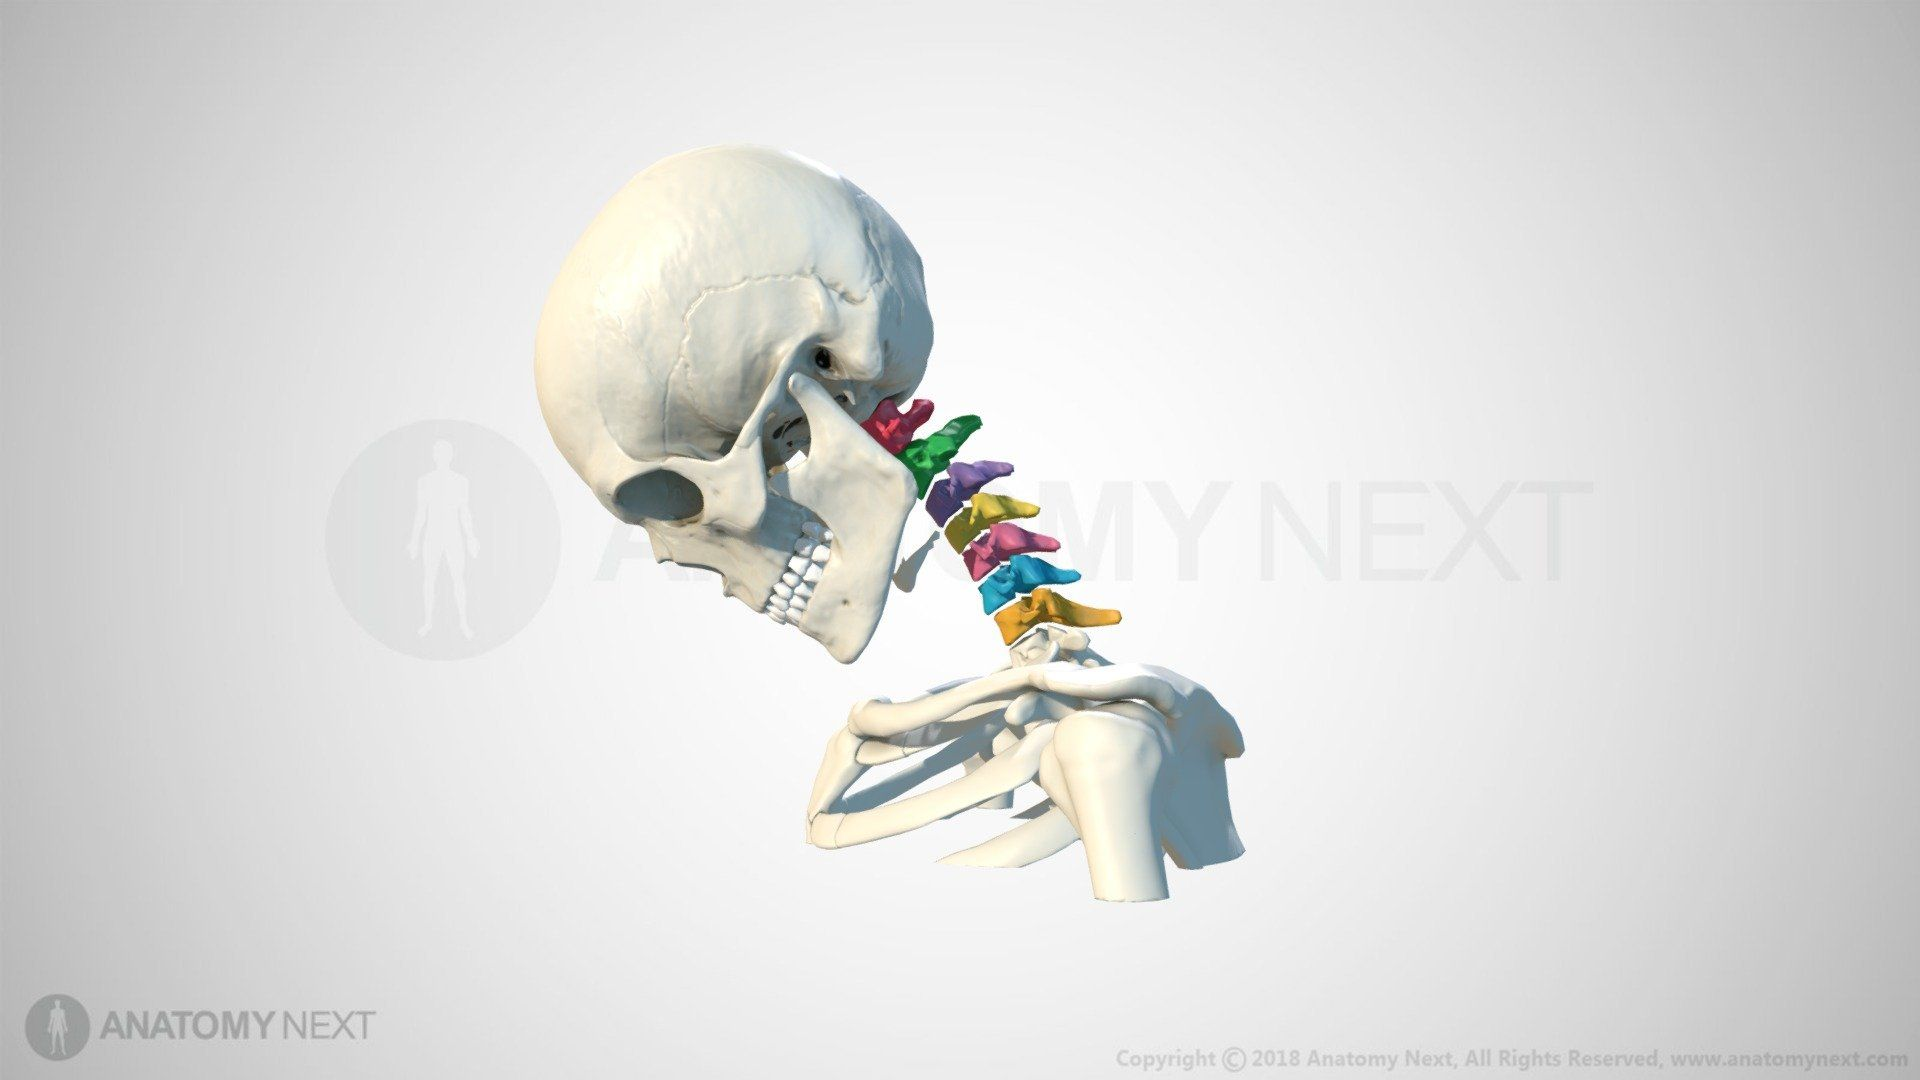 Neck Animation by Anatomy Next - Interactive 3D model on Sketchfab ...